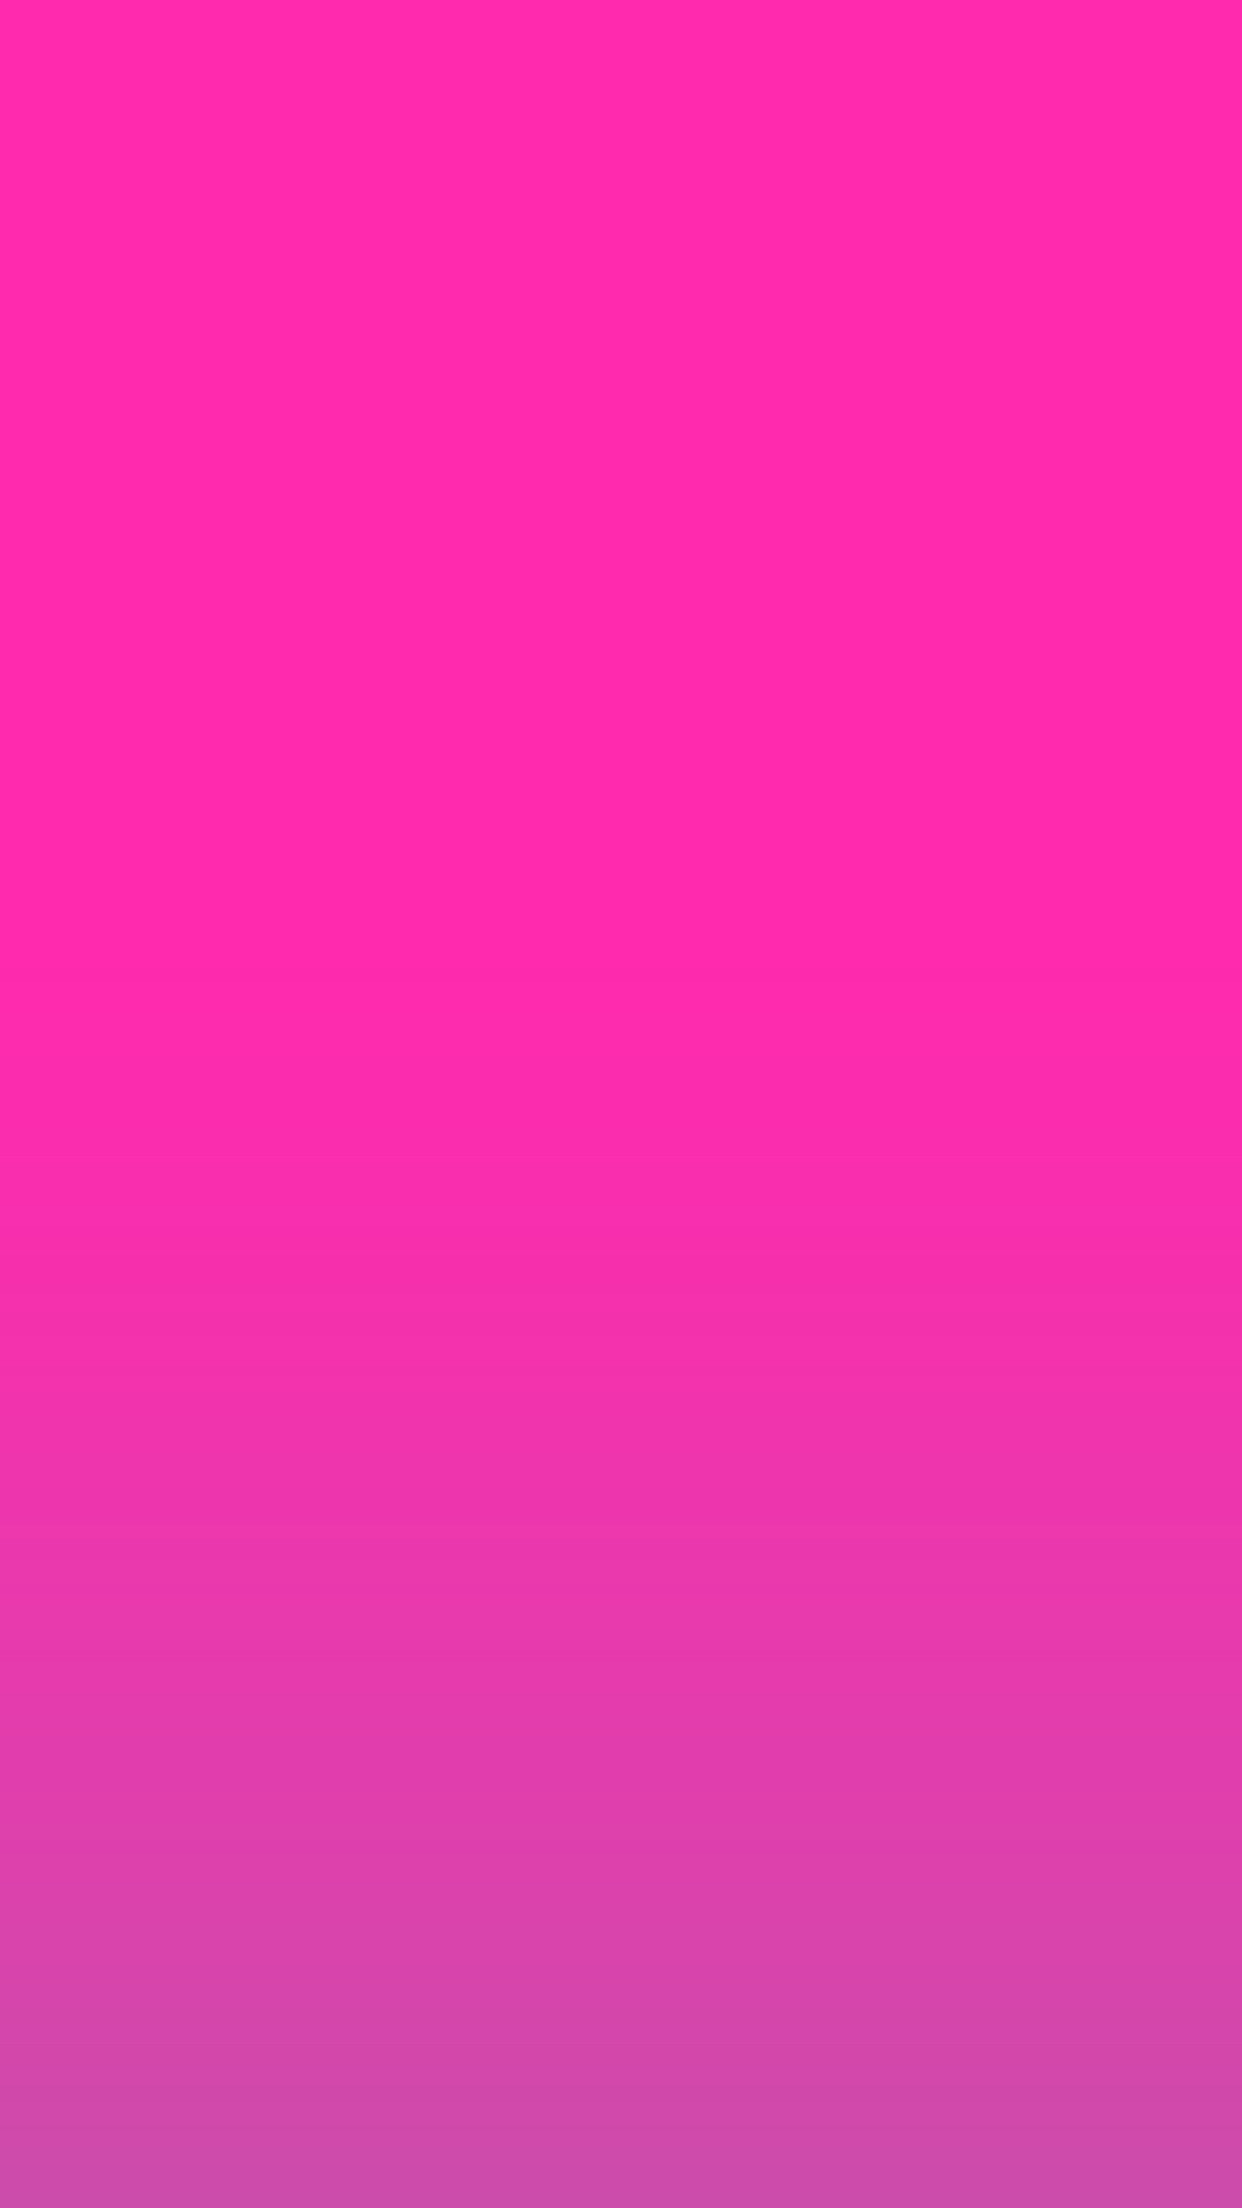 1242x2208 Pink, purple, gradient, ombre, wallpaper, iPhone